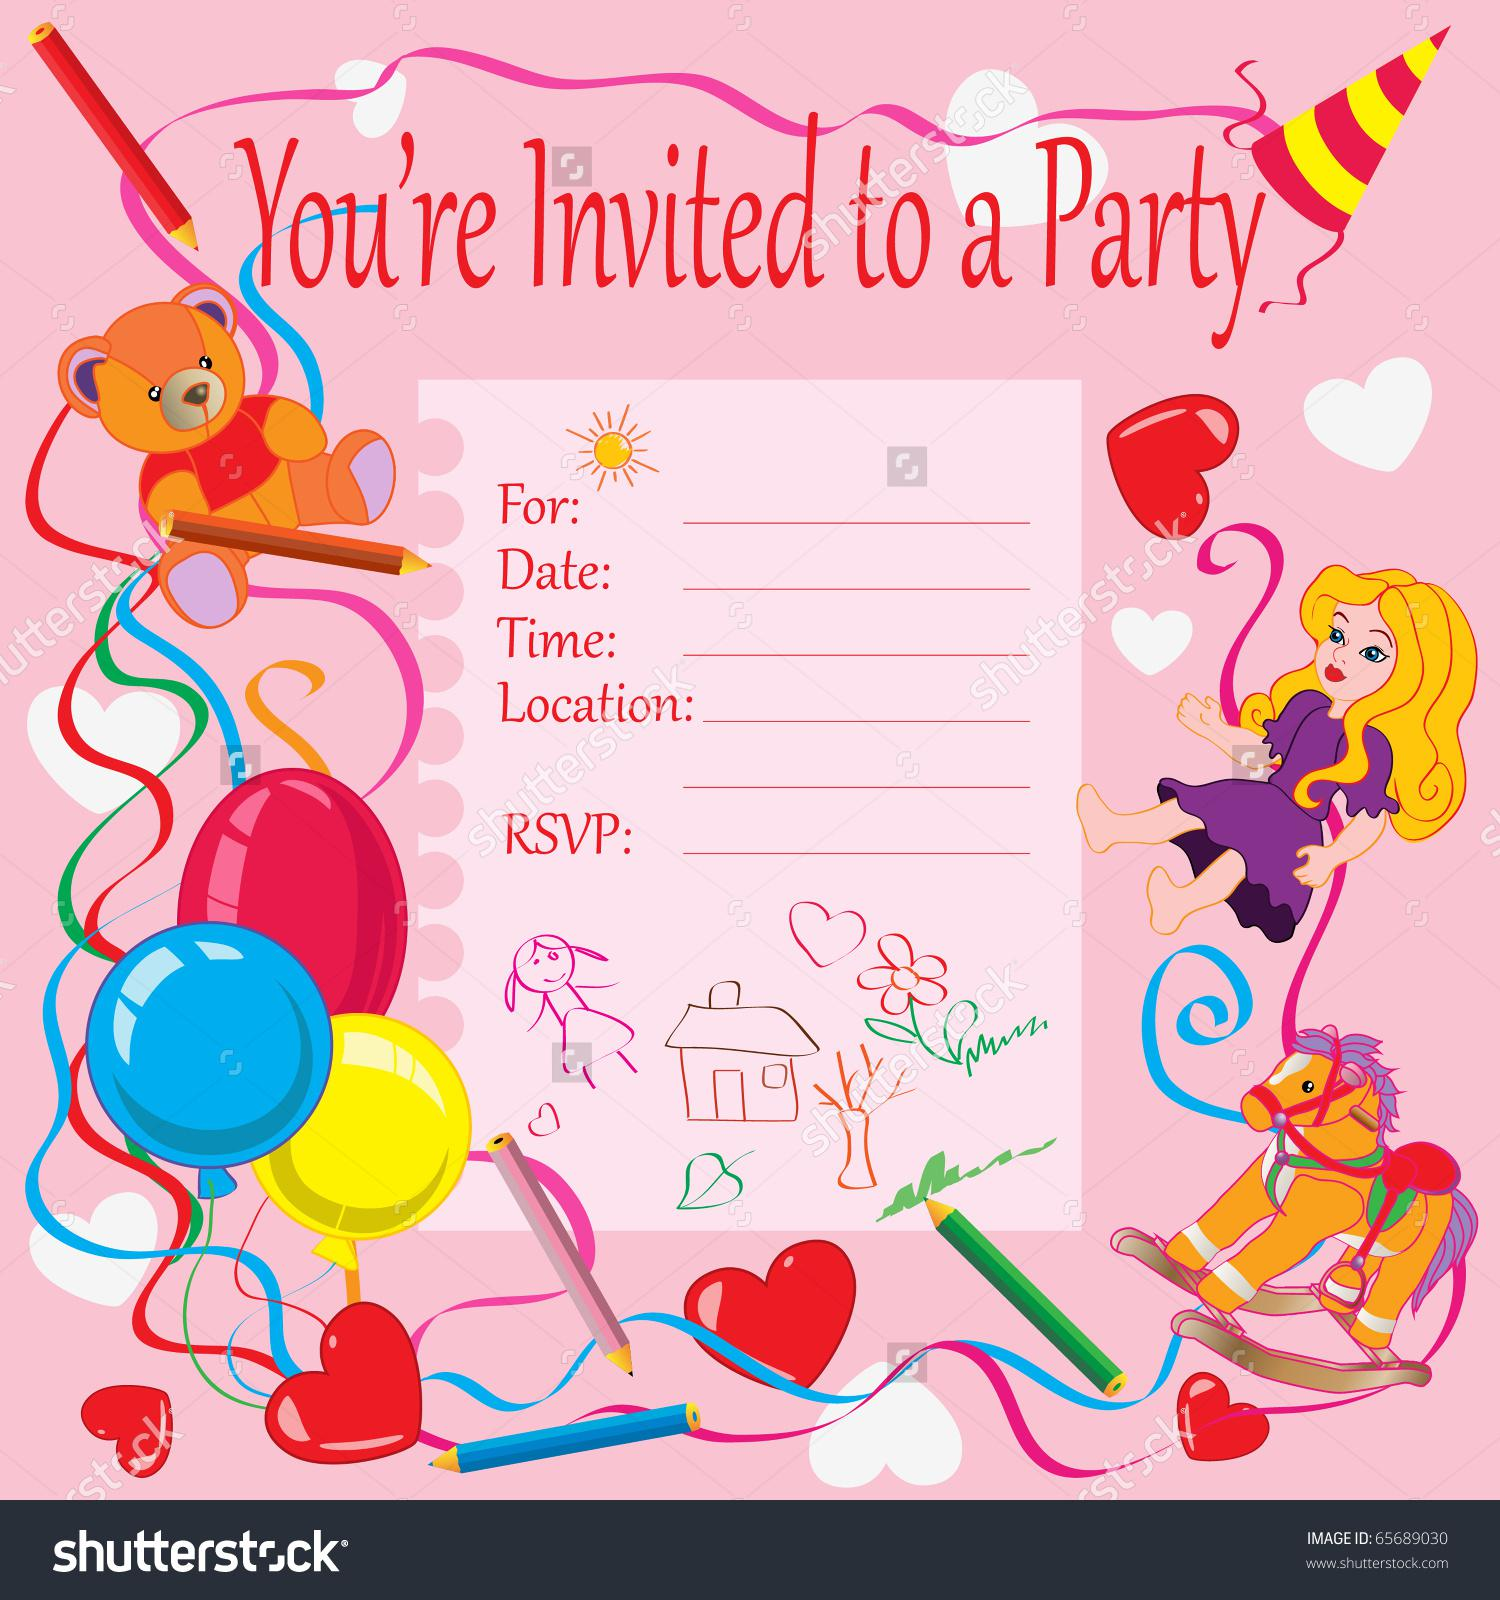 4 step make your own birthday invitations free sample printable printable invitation card for birthday party for kids filmwisefo Images